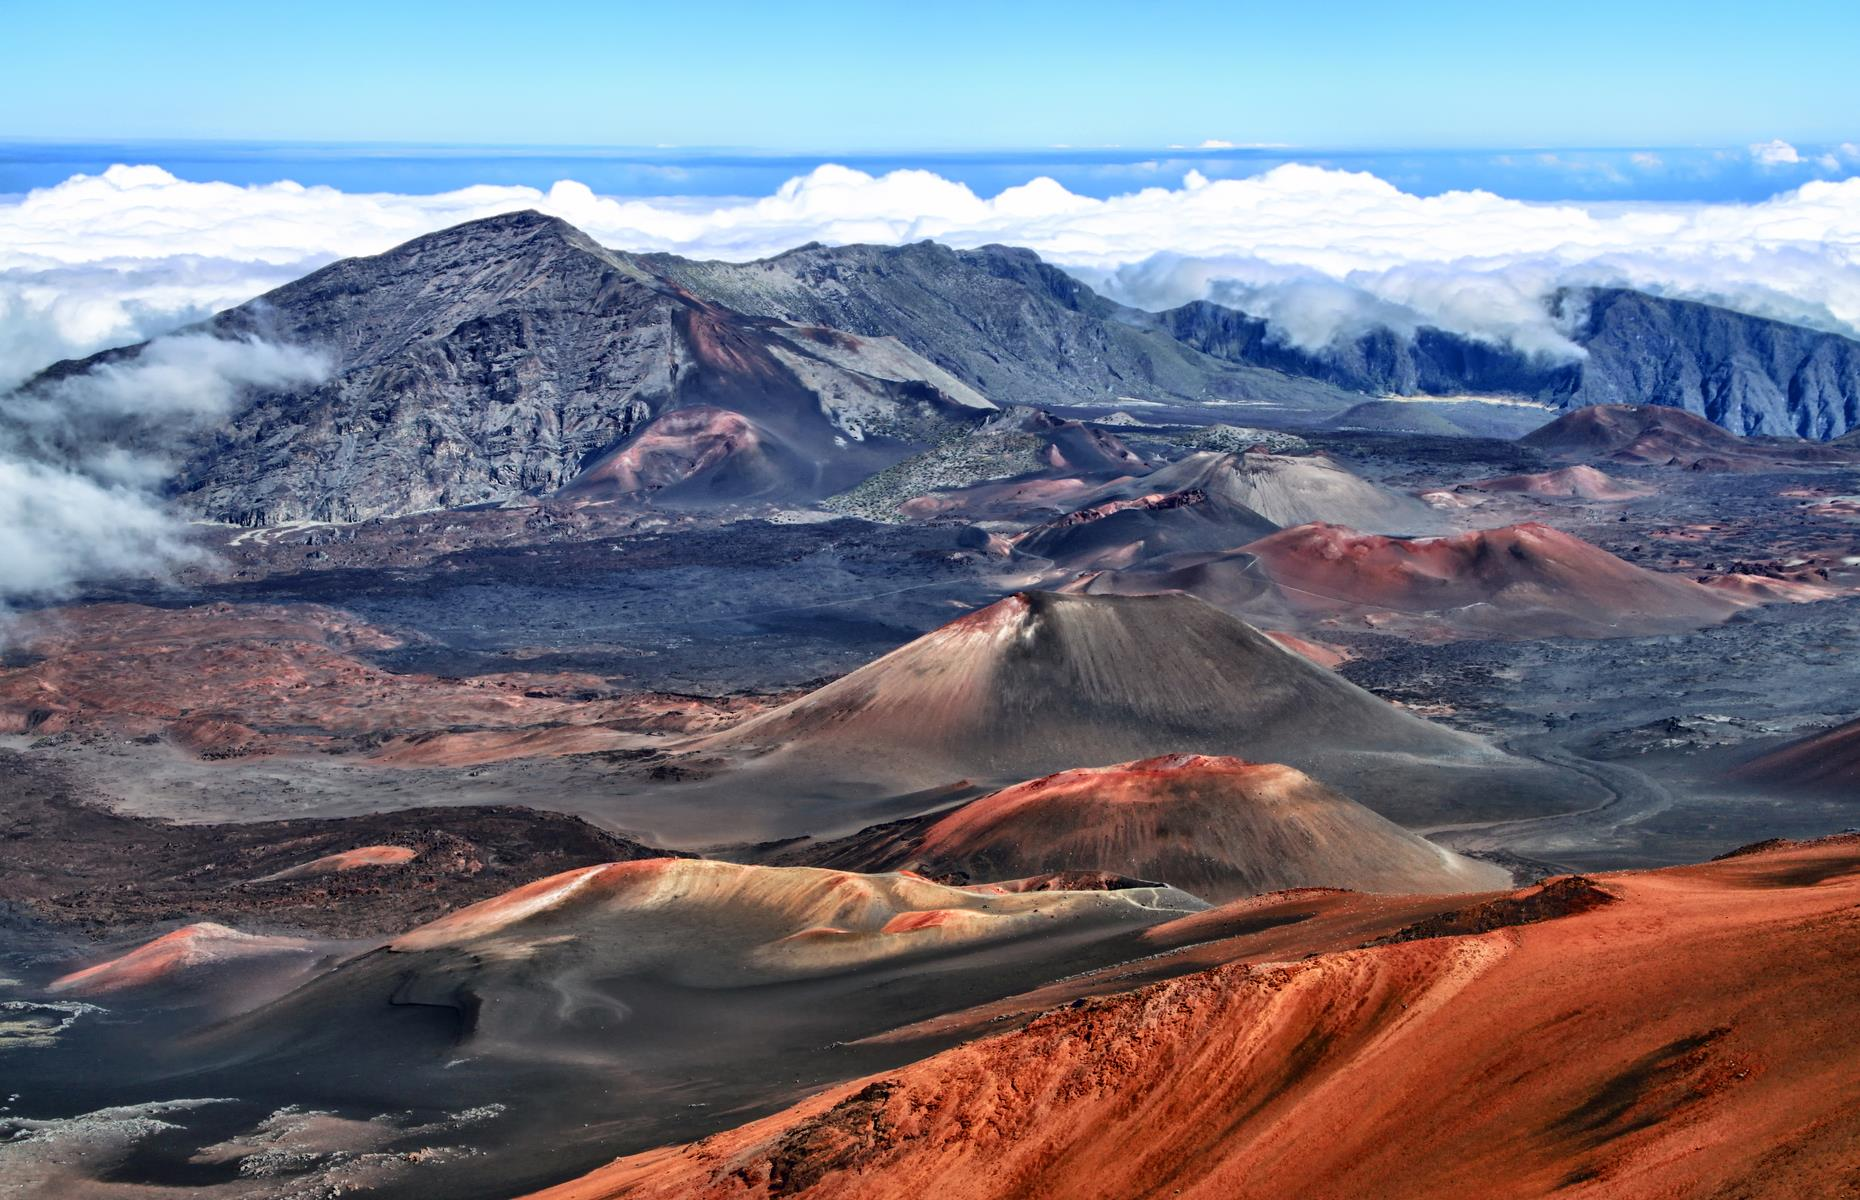 Slide 10 of 61: These Mars-like landscapes exist in the remote Summit District of Hawaii's Haleakalā National Park. Here, the namesake Haleakalā, a gargantuan shield volcano, reaches 10,023 feet (3,055m), and brave hikers come to spot native flora and fauna and experience some of the best stargazing in the state. Elsewhere in the park, the Kīpahulu District complements the Summit with its waterfalls, greenery and rugged coastline.